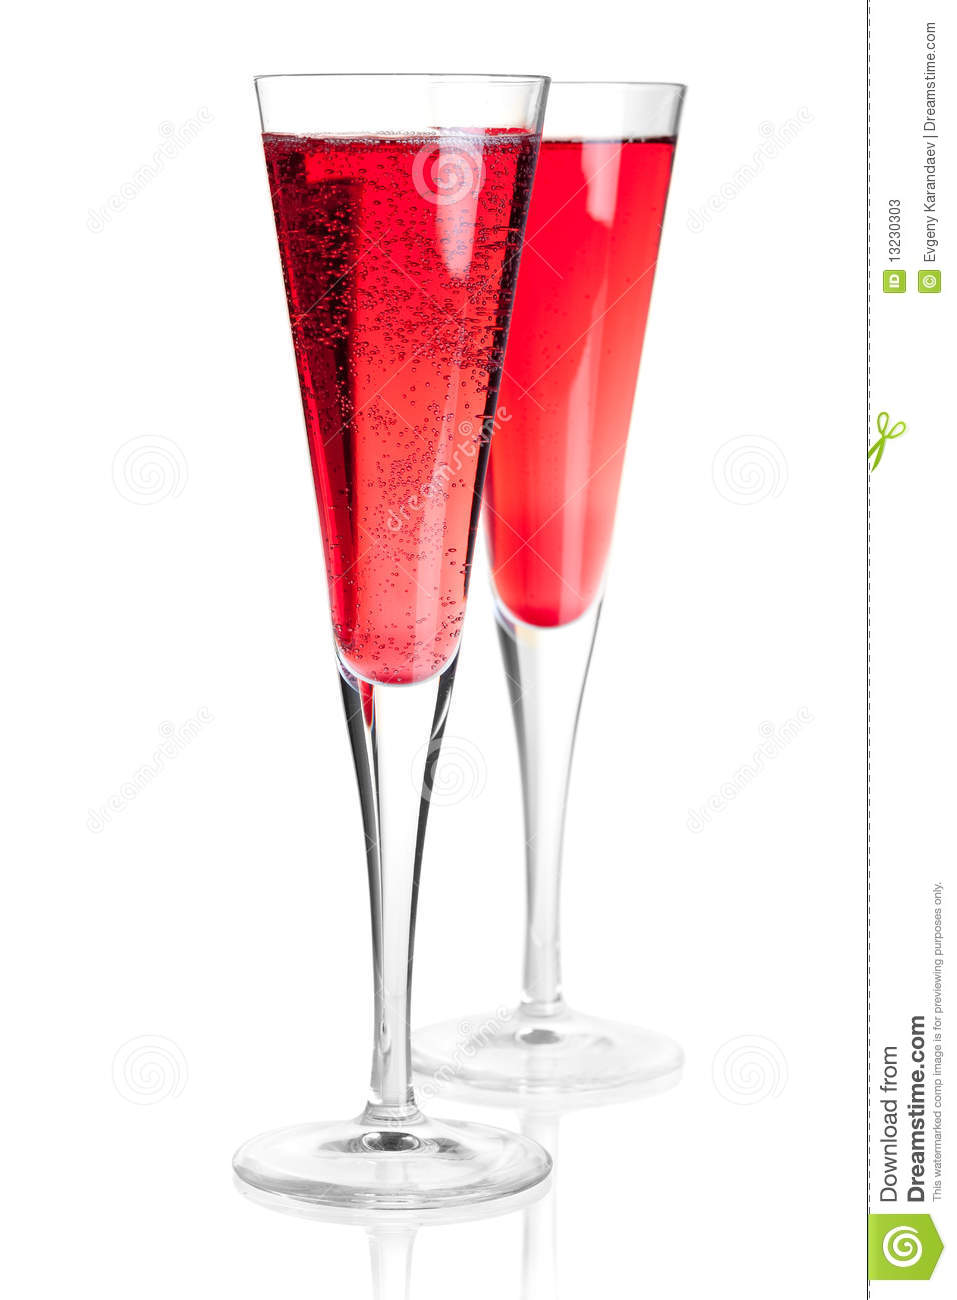 Kir royal alcohol cocktail stock photos image 13230303 for White wine based cocktails